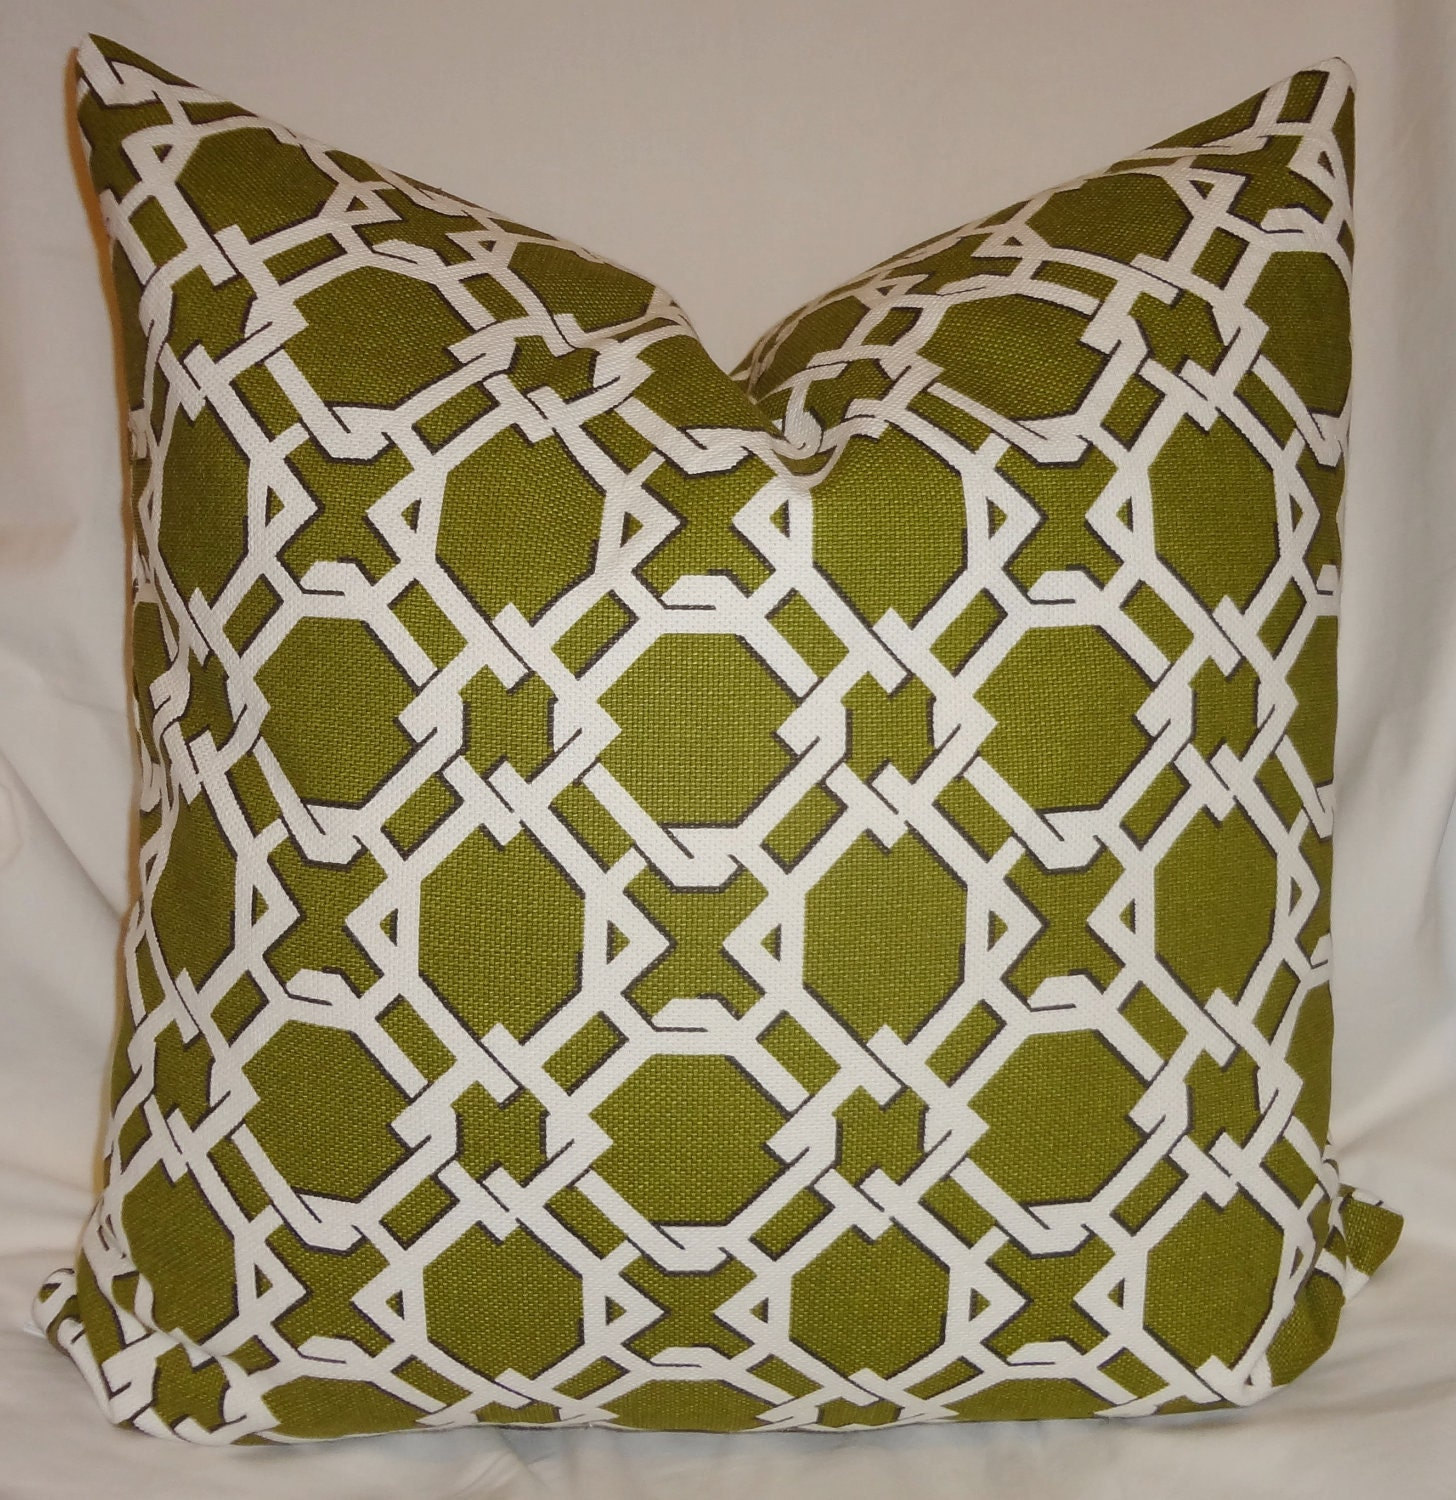 Olive Green Decorative Pillow : Decorative Pillow Olive Green/White Lattice by HomeLiving on Etsy